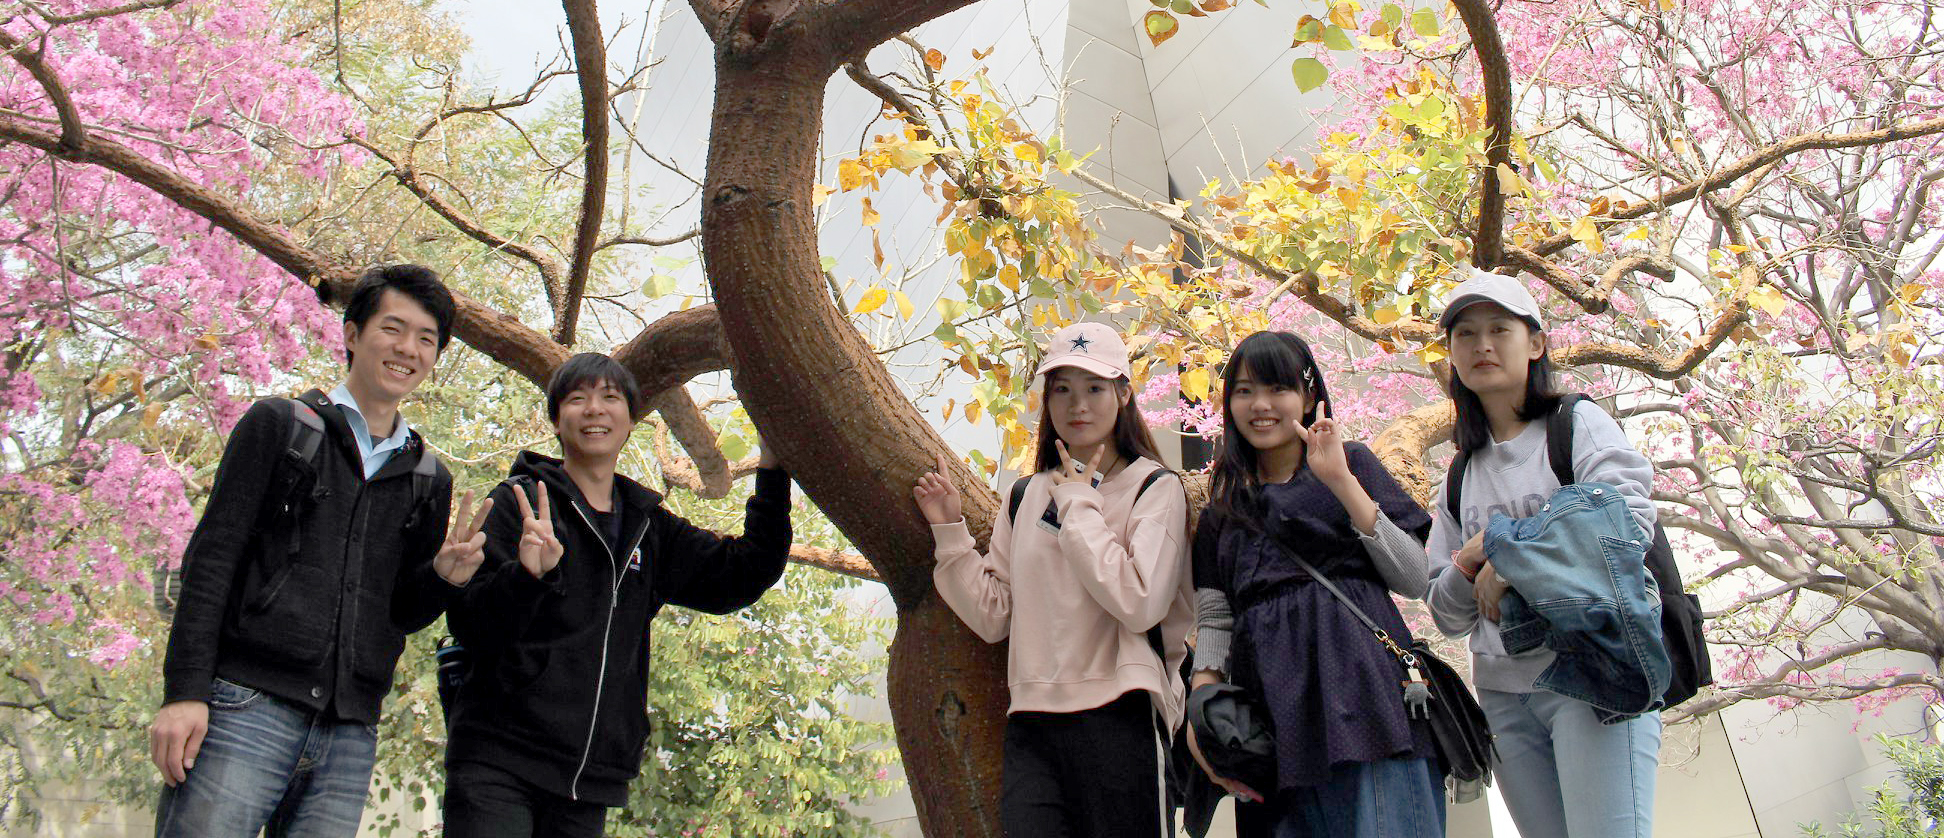 students in front of cherry tree